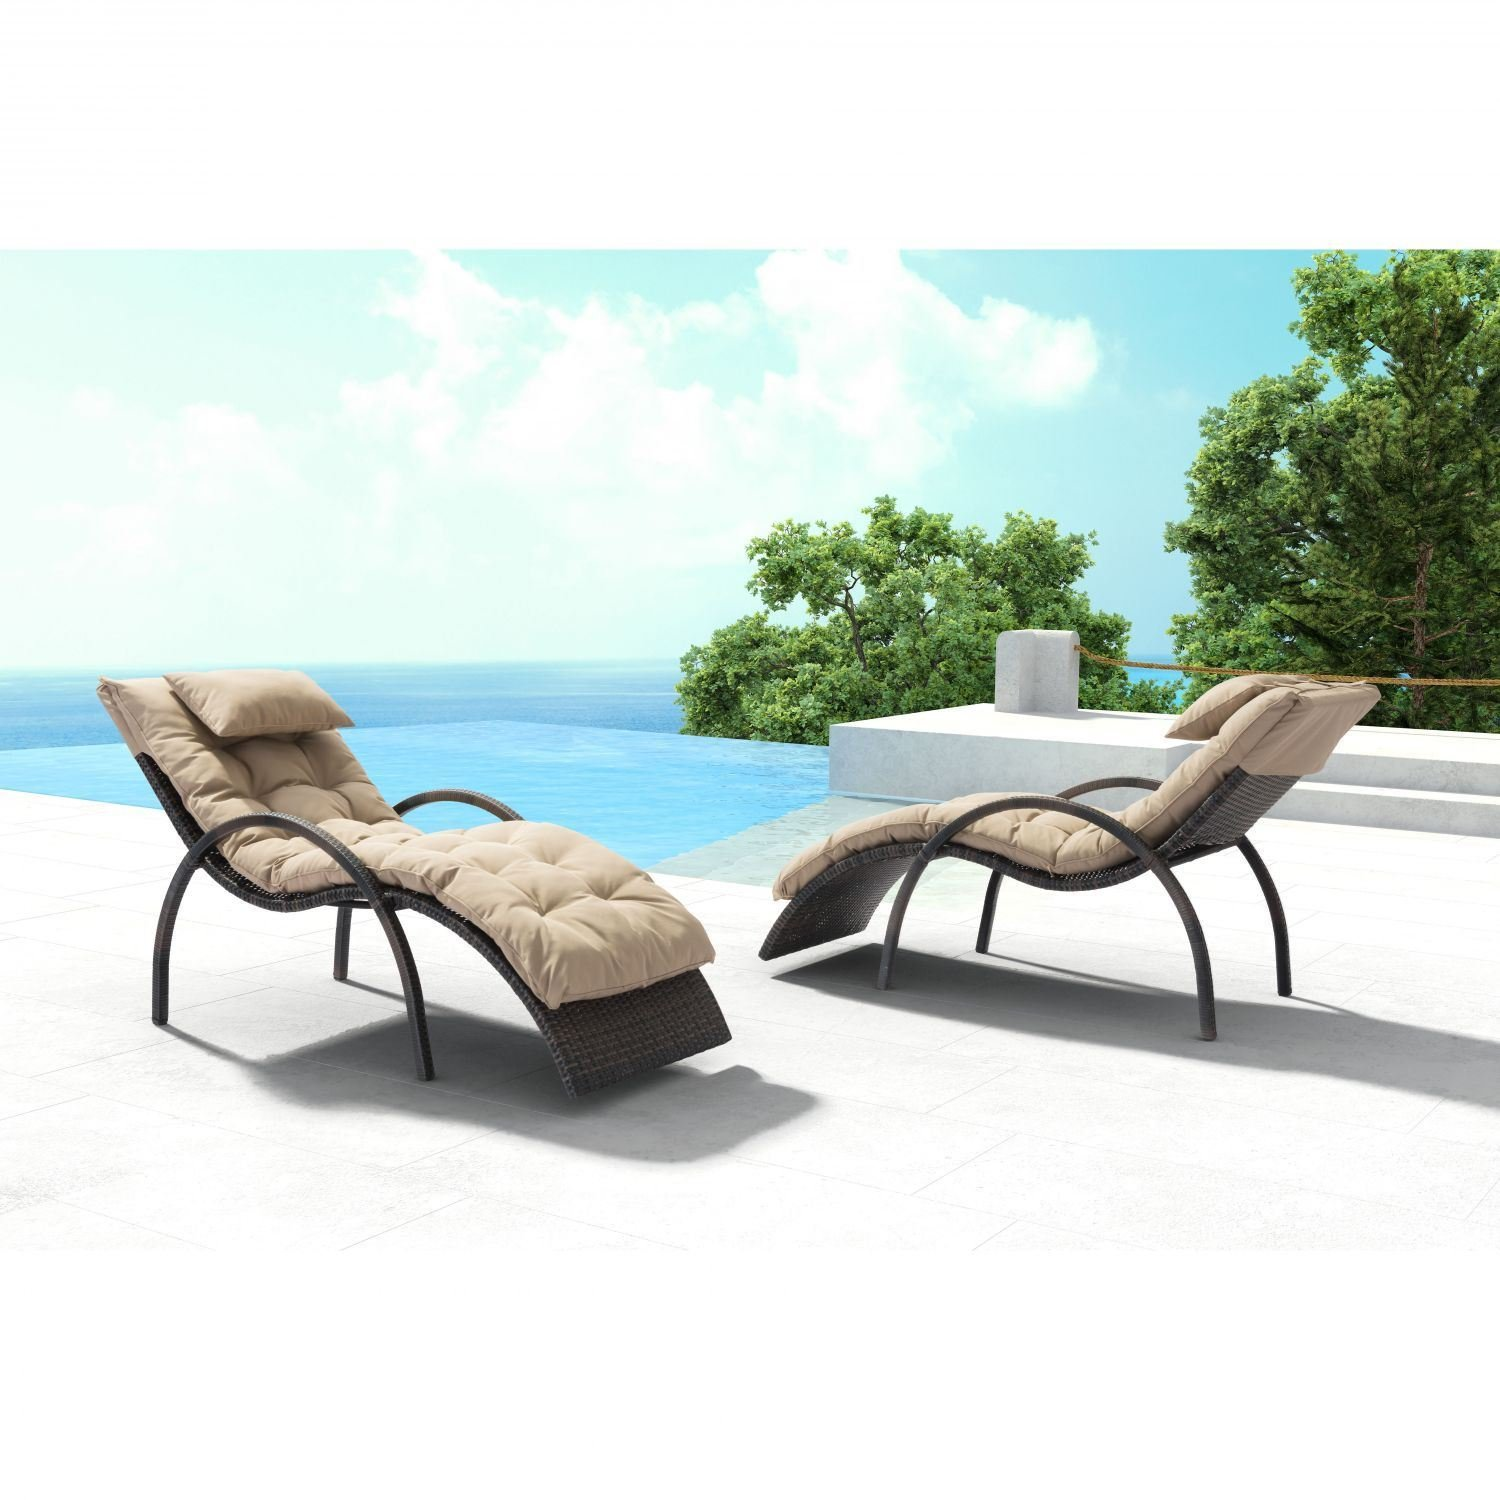 Eggertz beach chaise lounge brown beige 703841 zuo for Beach lounge chaise